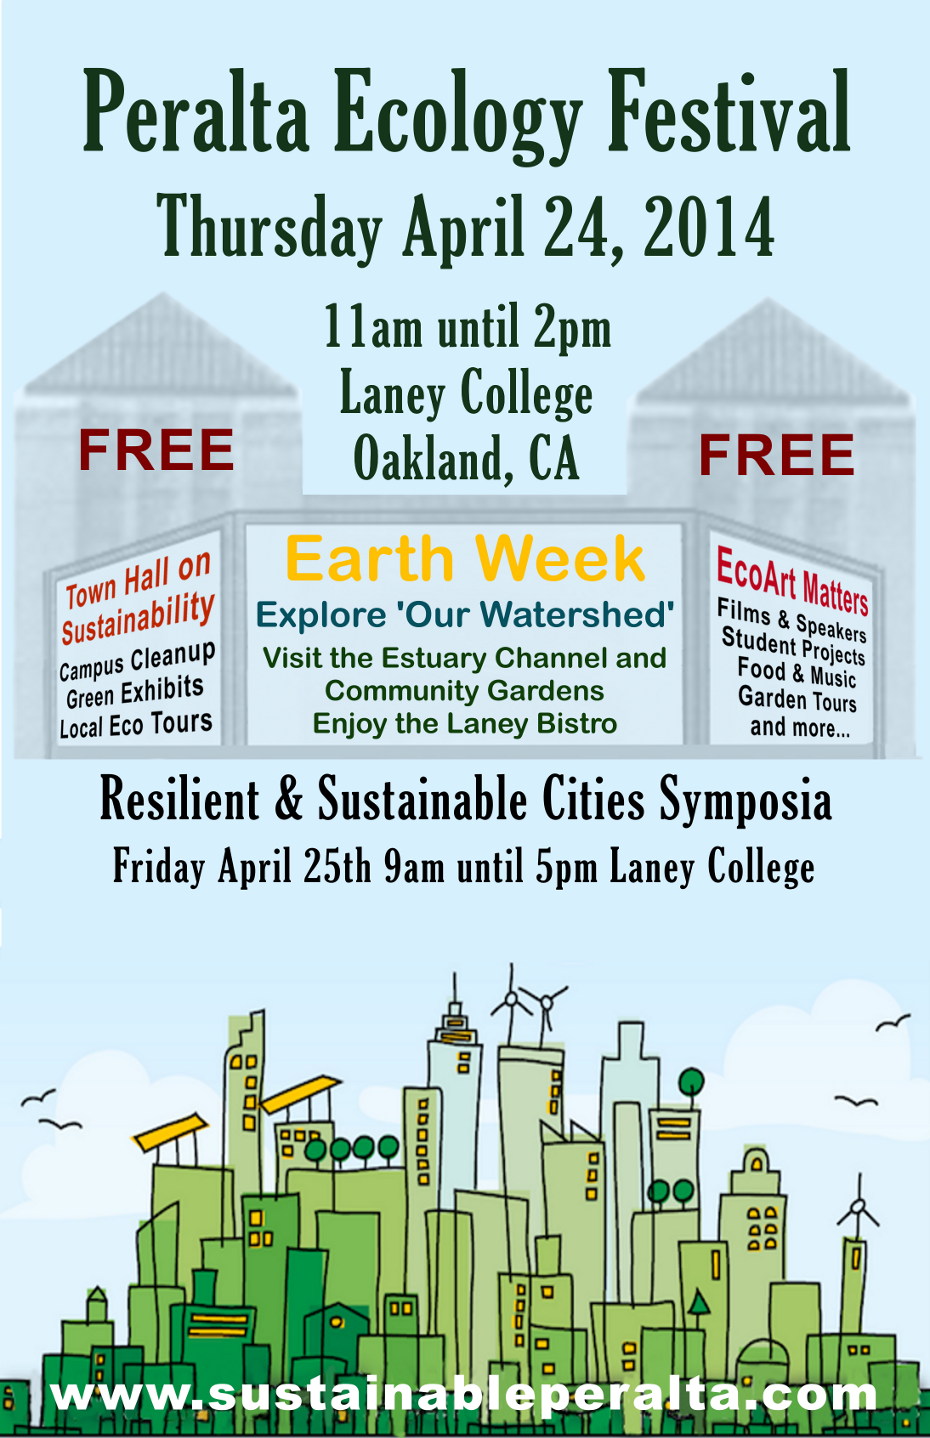 Peralta Ecology Festival Thursday April 24th at Laney College